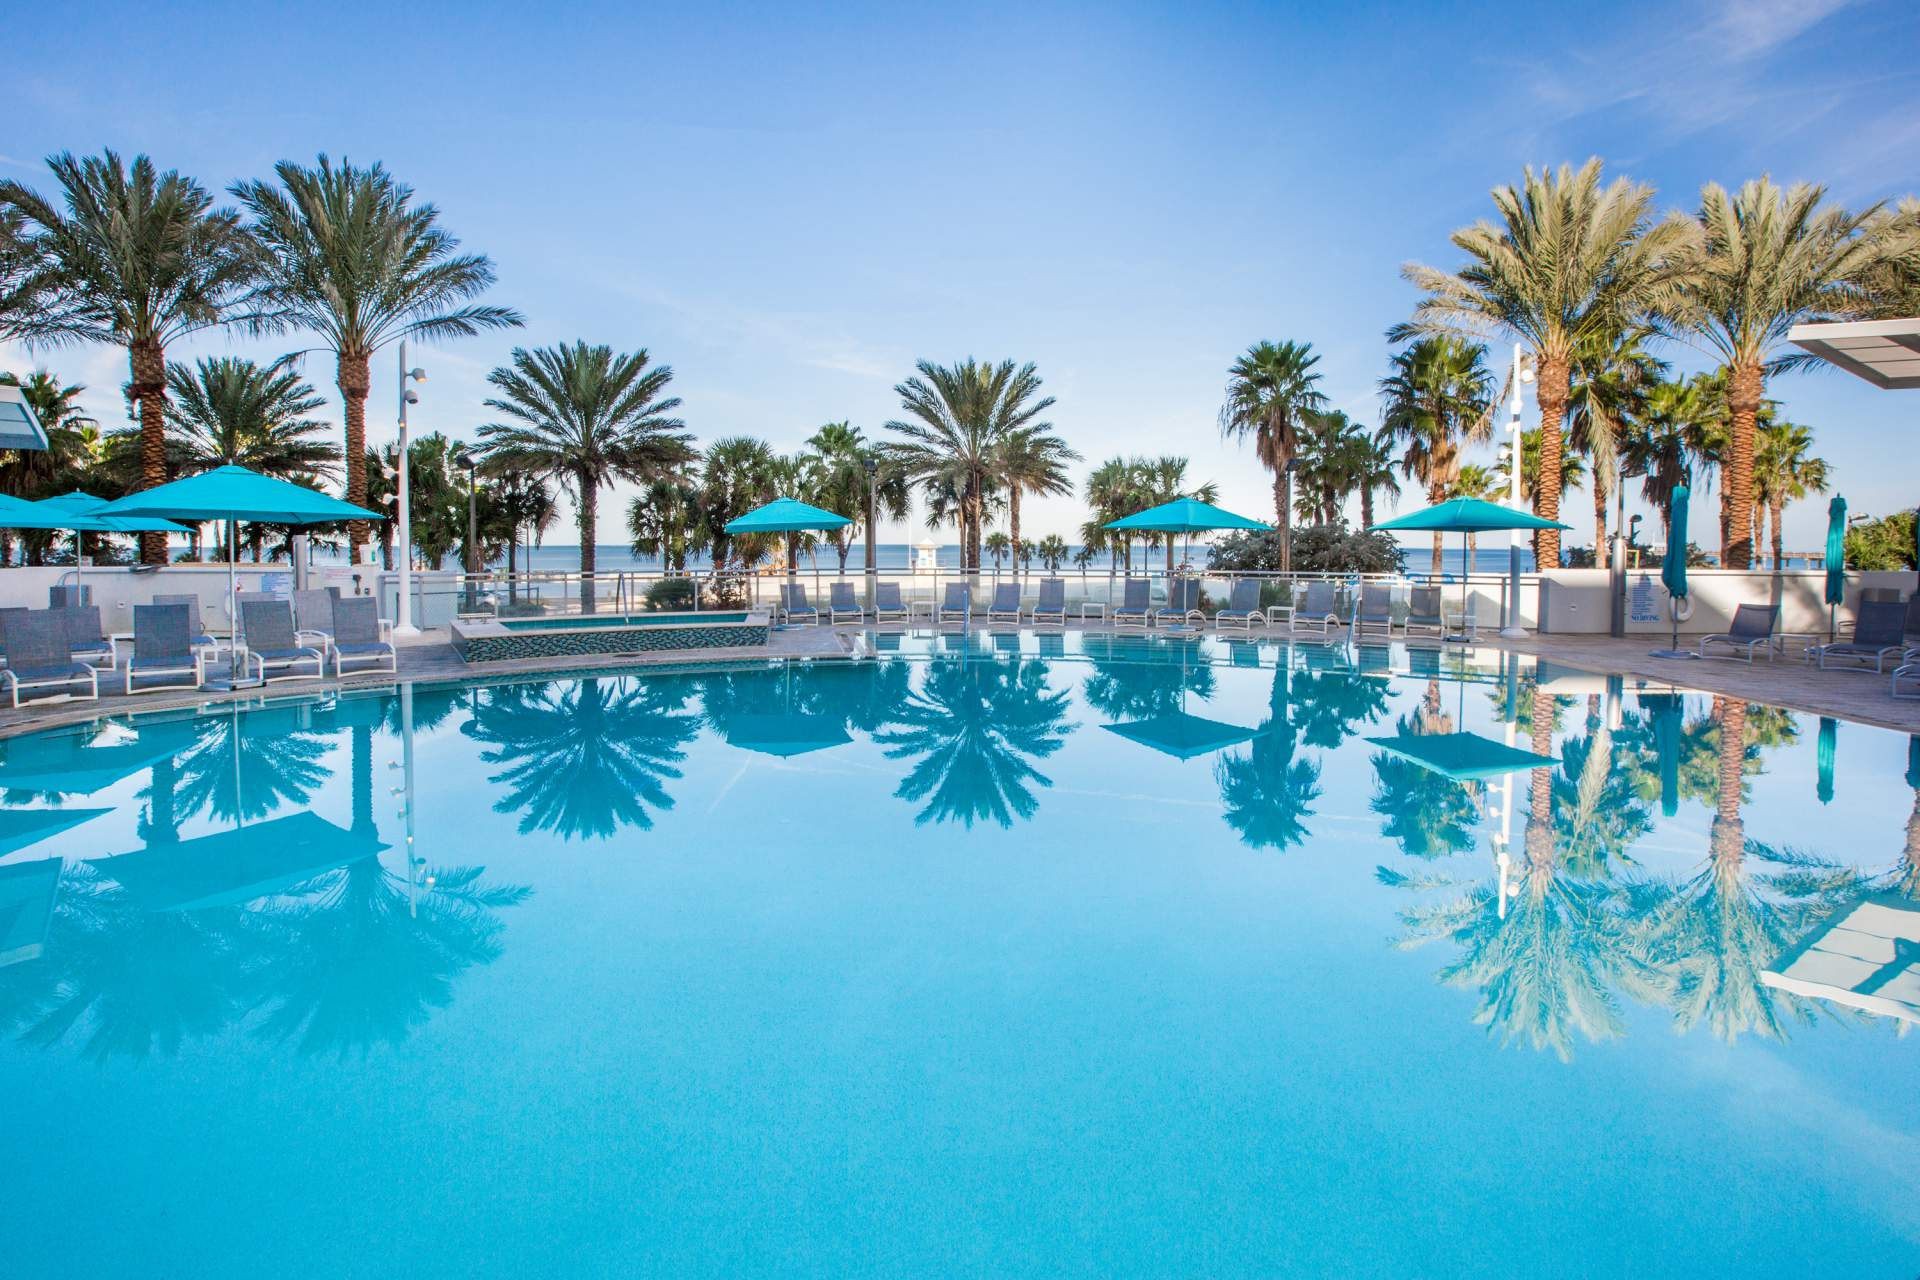 Amenities at Wyndham Clearwater Beach Resort